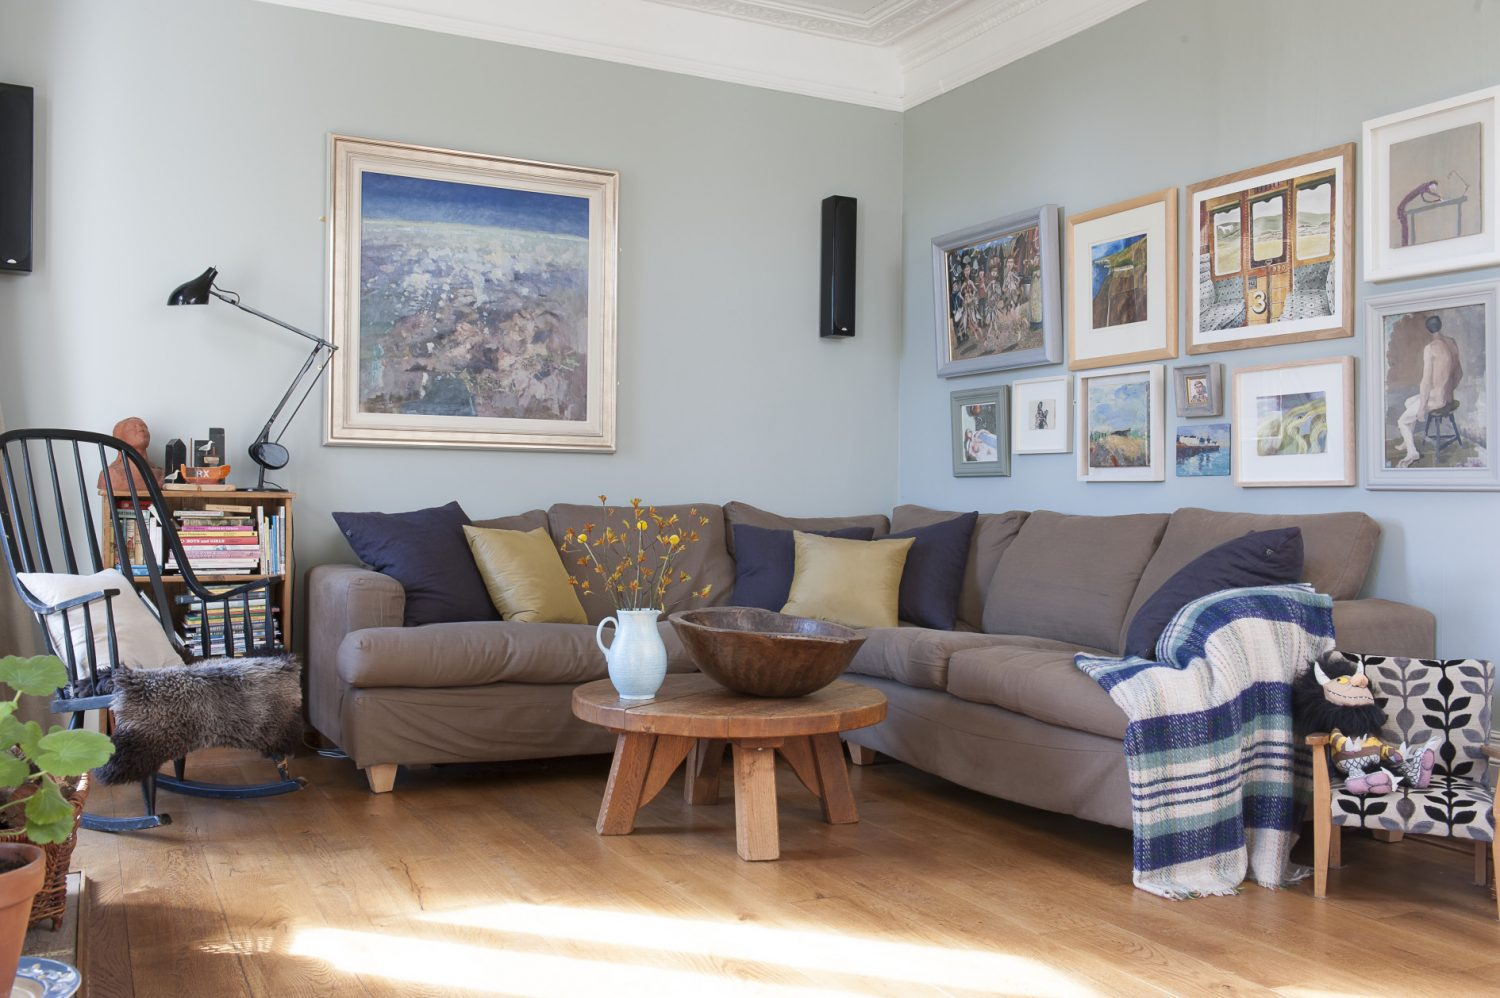 The drawing room, painted in F&B's Light Blue, features a dark mushroom coloured, tweed covered corner sofa, dressed with pale chartreuse green and dark navy cushions and a striped throw